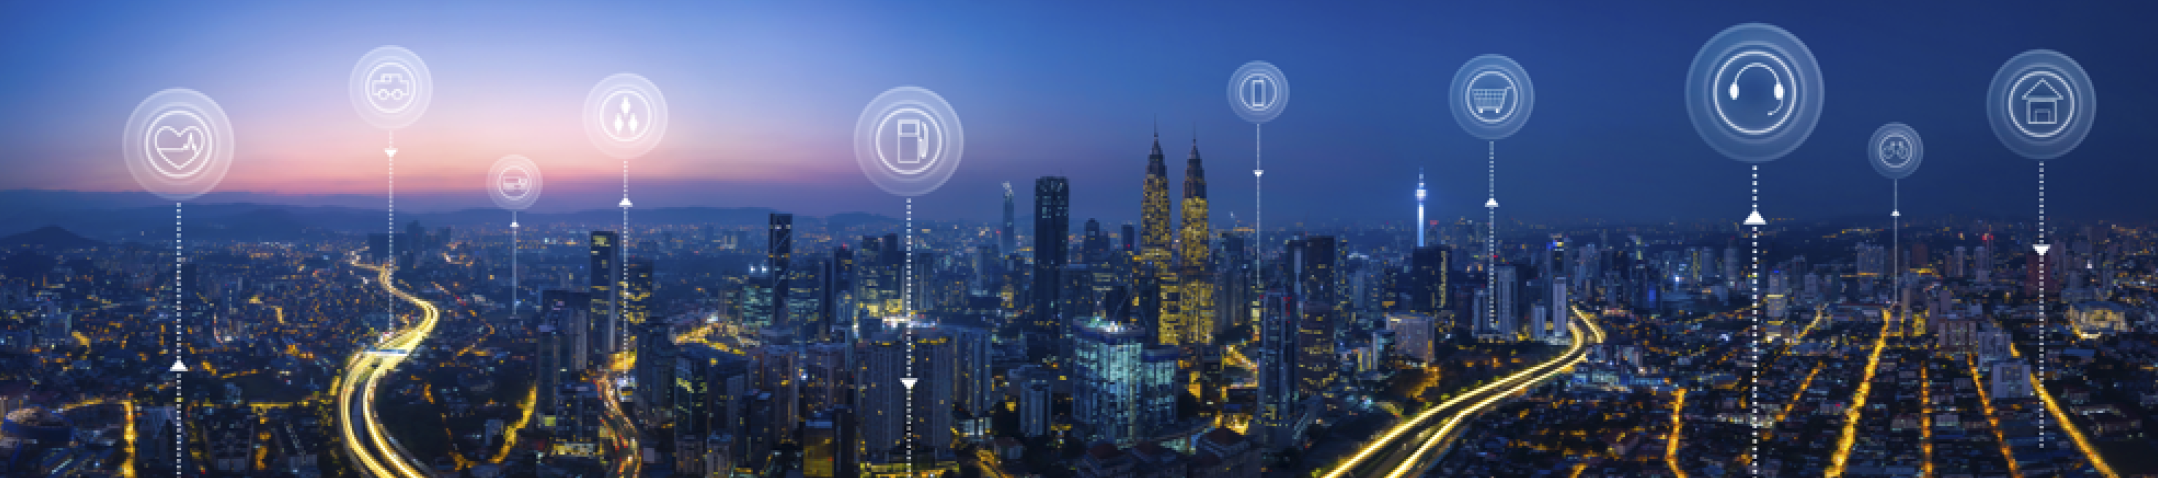 Embracing the future with smart cities